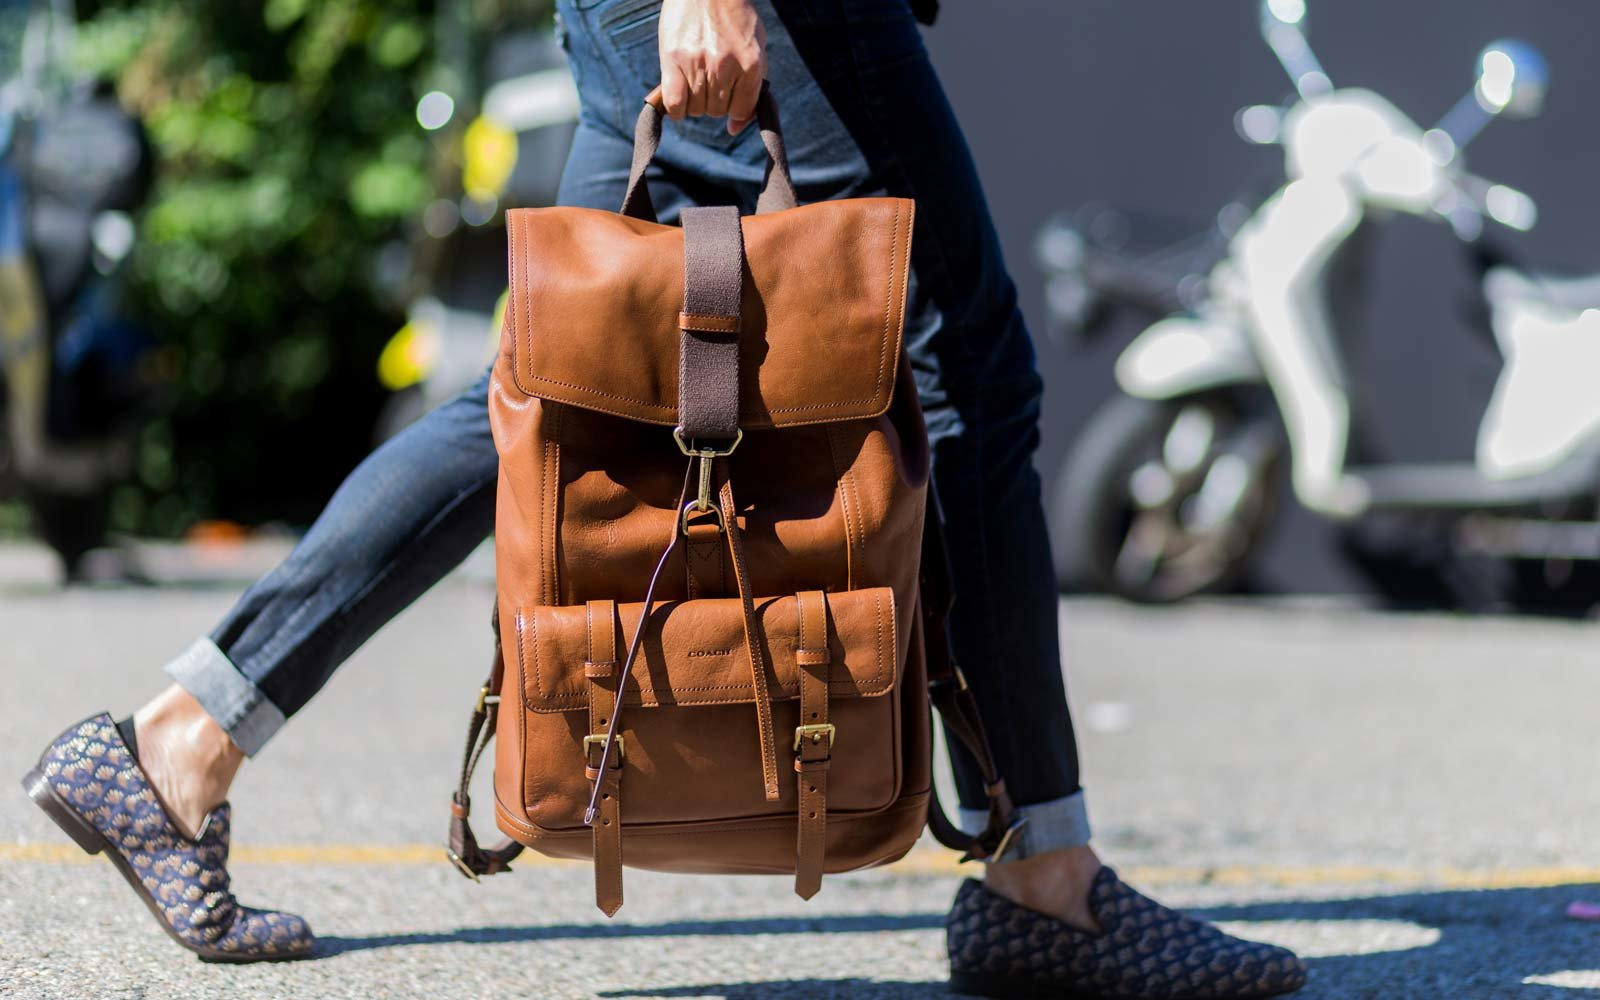 The Most Stylish Travel Backpacks For Women | Travel   Leisure